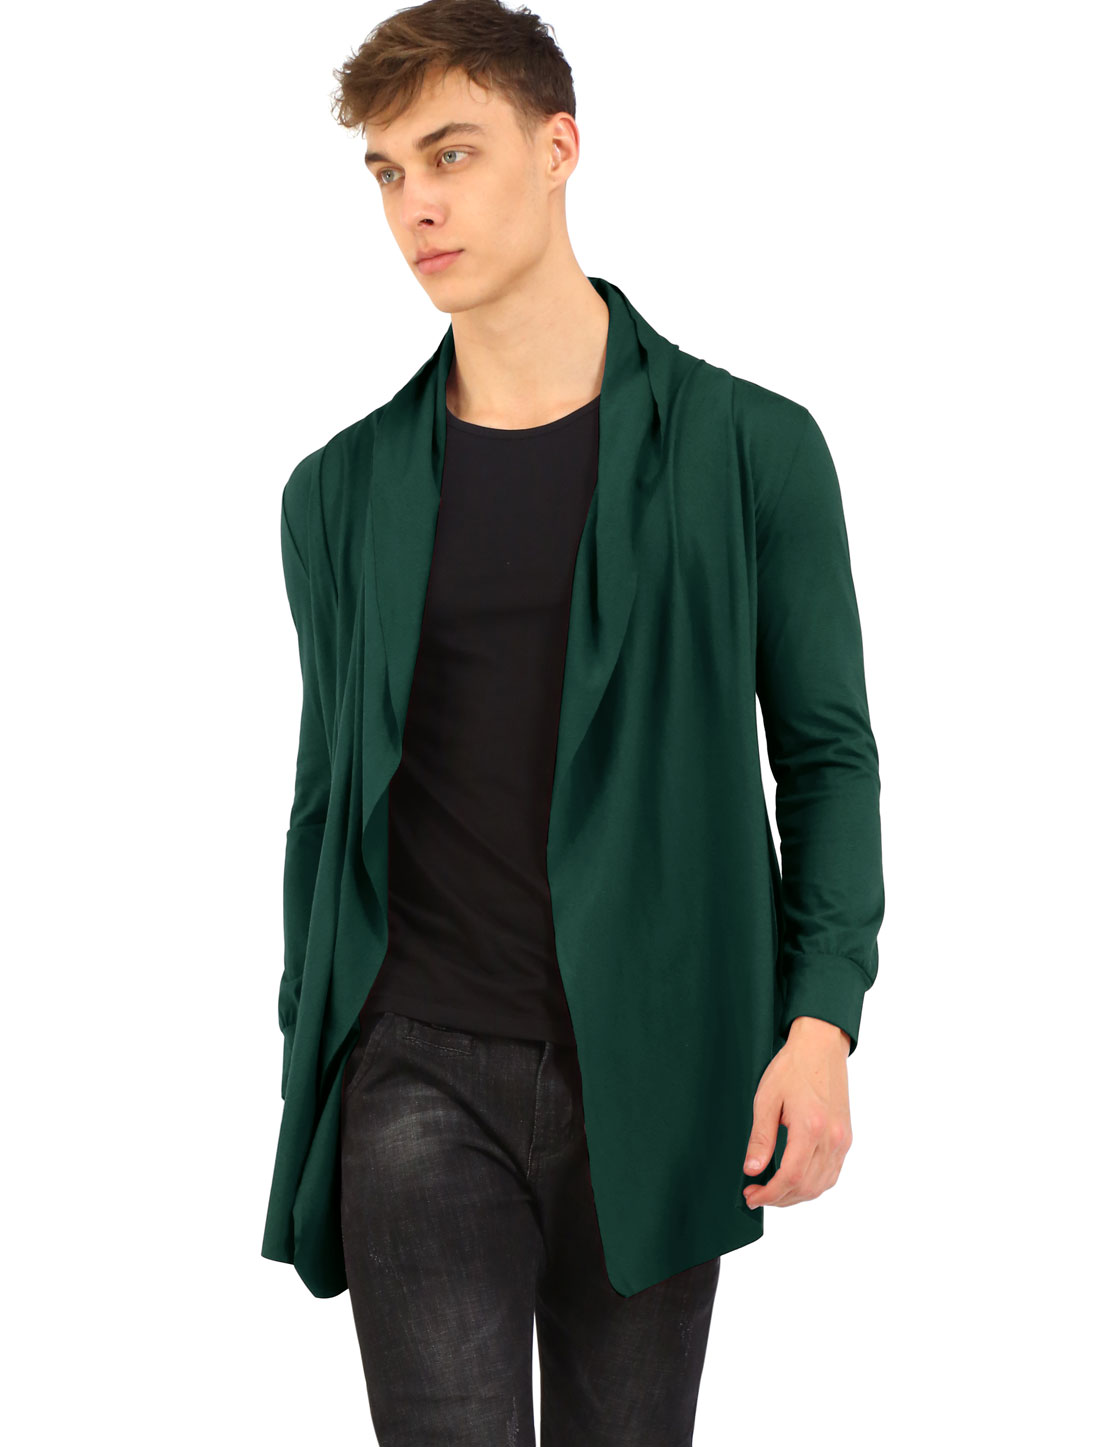 Men Front Open Side Pockets Irregular Hem Leisure Long Cardigan Green M